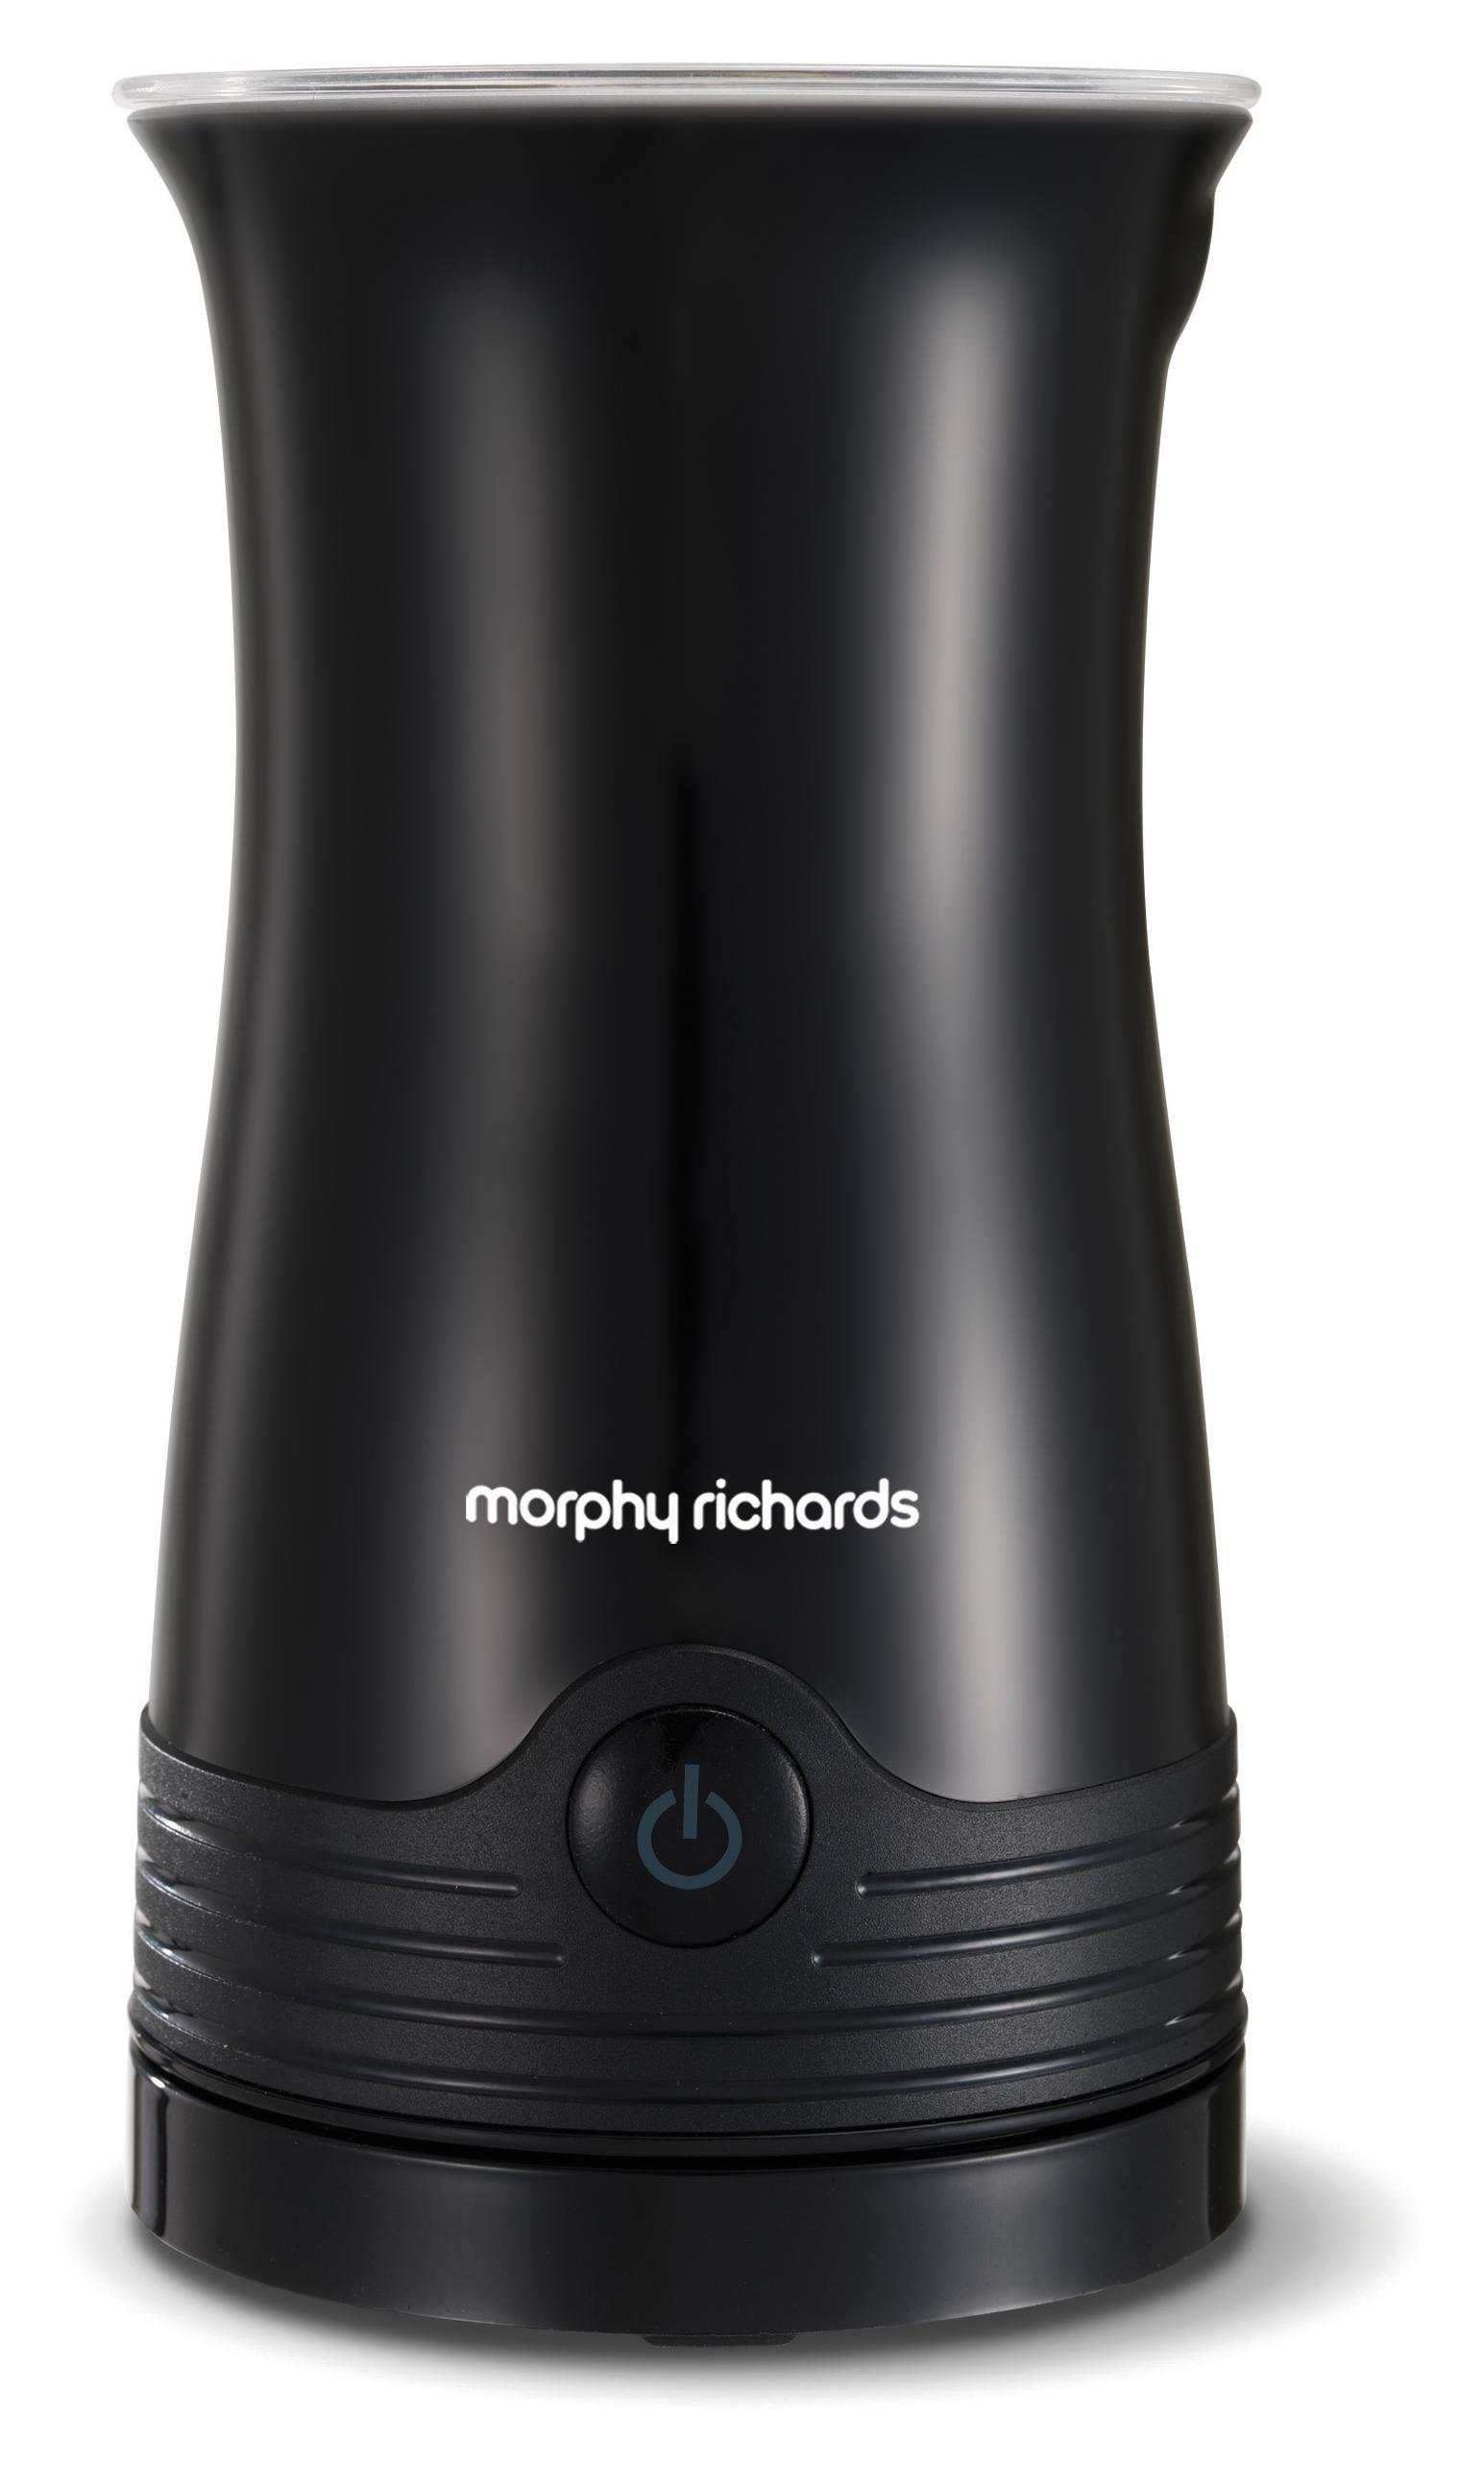 Morphy Richards Accents Milk Frother Hot And Cold Milk Frother 210002 Black Milk Frother